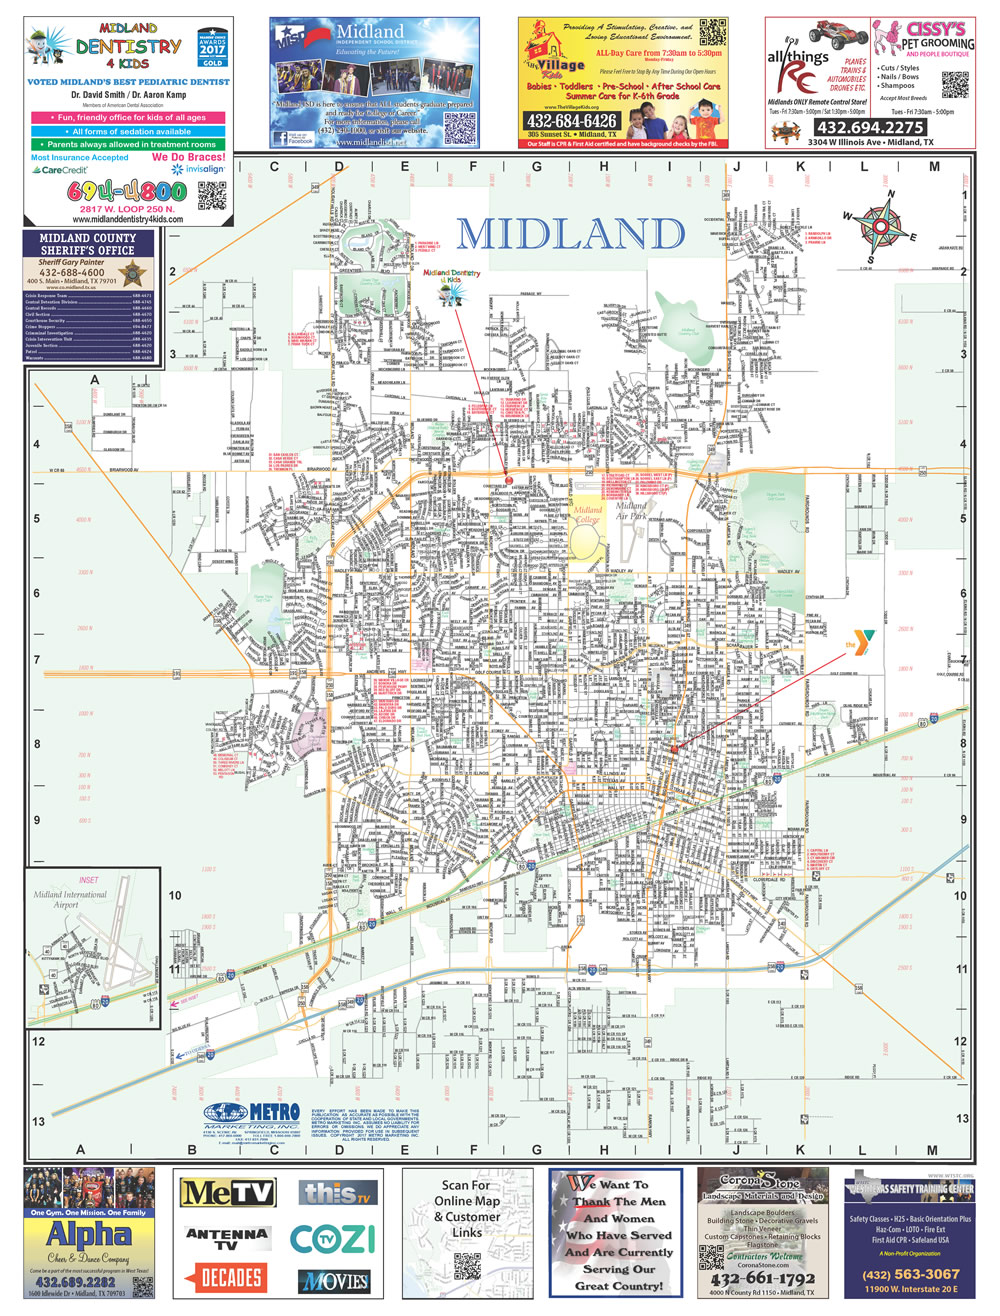 Map Of Texas Midland.Midland Texas With Midland College And Area Overview City Street Map